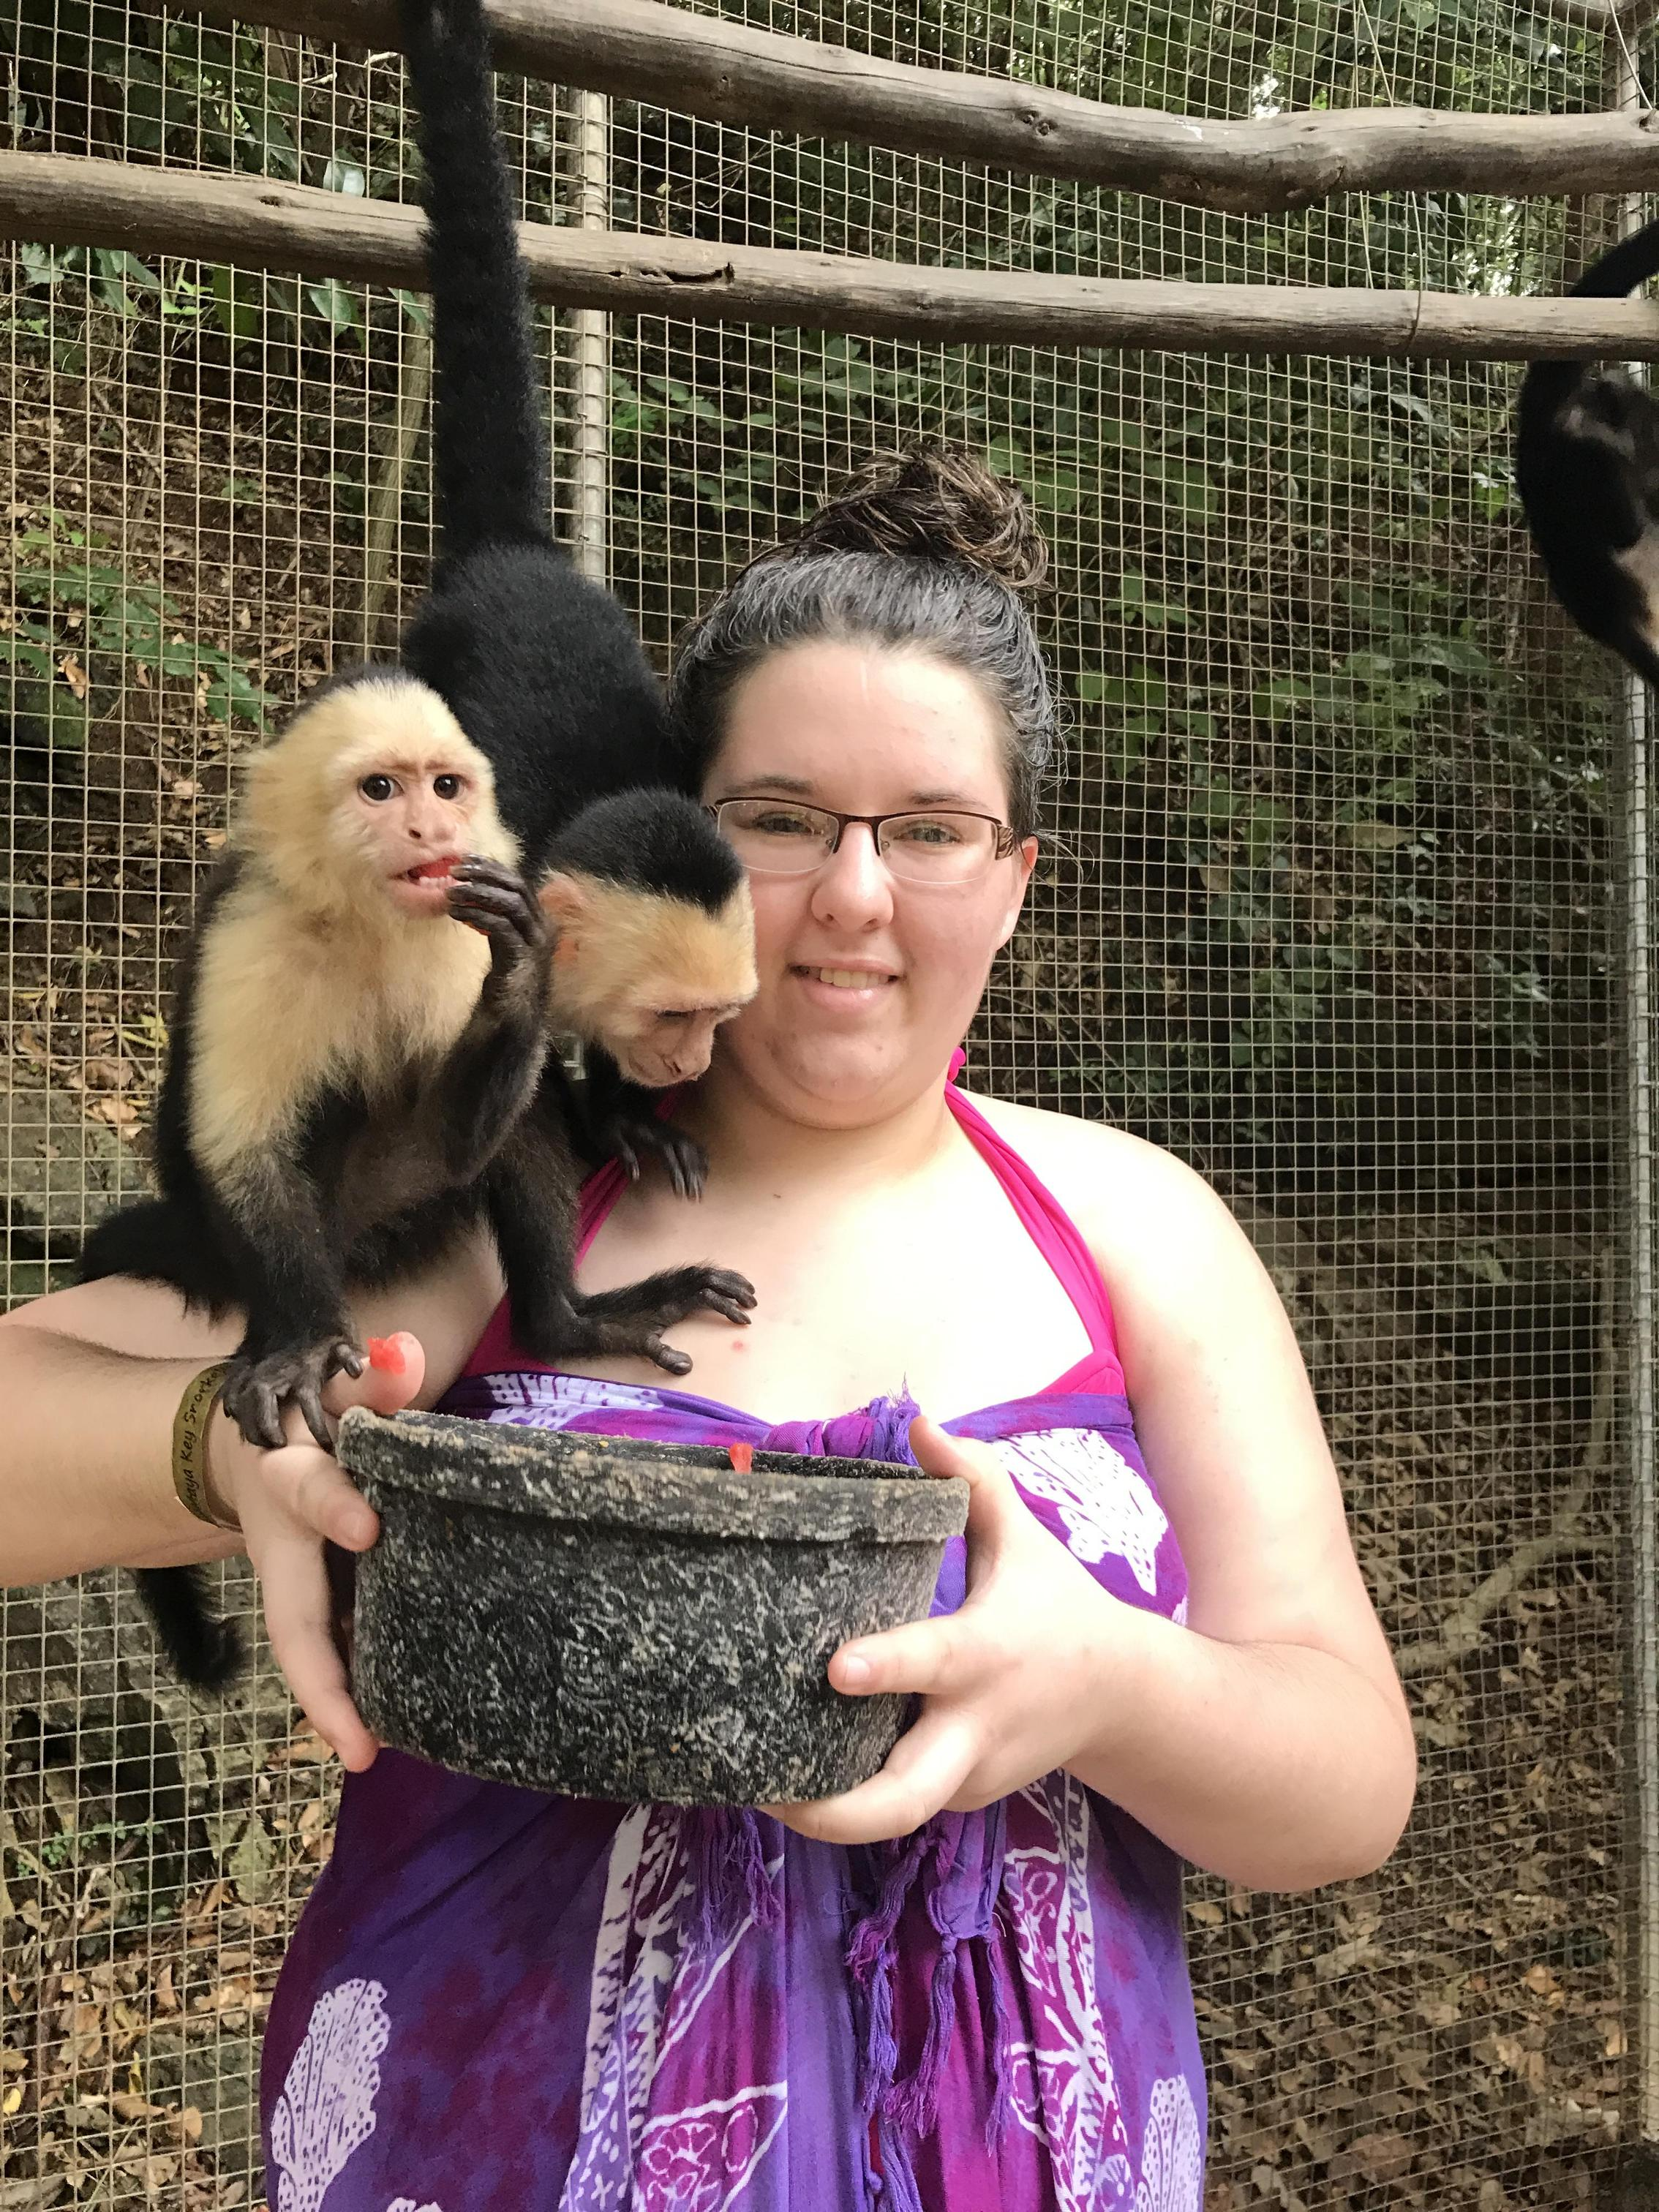 Ms. Butler with two monkeys on her shoulder eating food out of a bucket she's holding in an Animal Conservatory in Mahogany Bay, Roatán, Honduras in January 2017